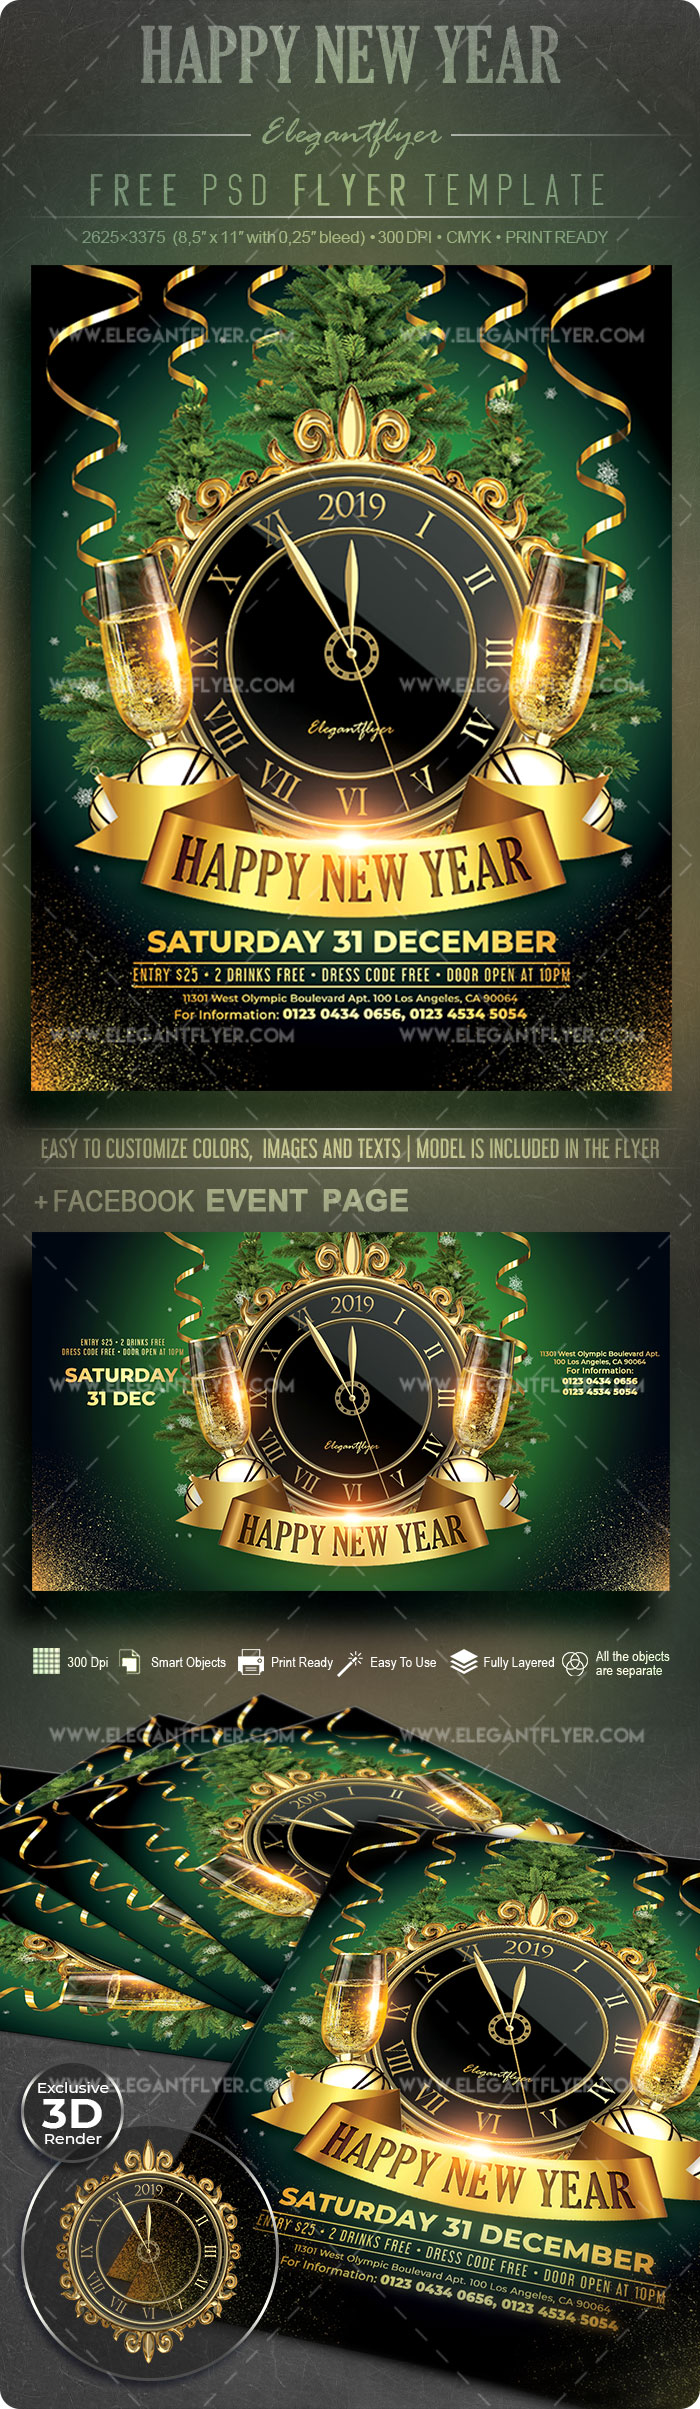 Happy New Year – Free Flyer PSD Template